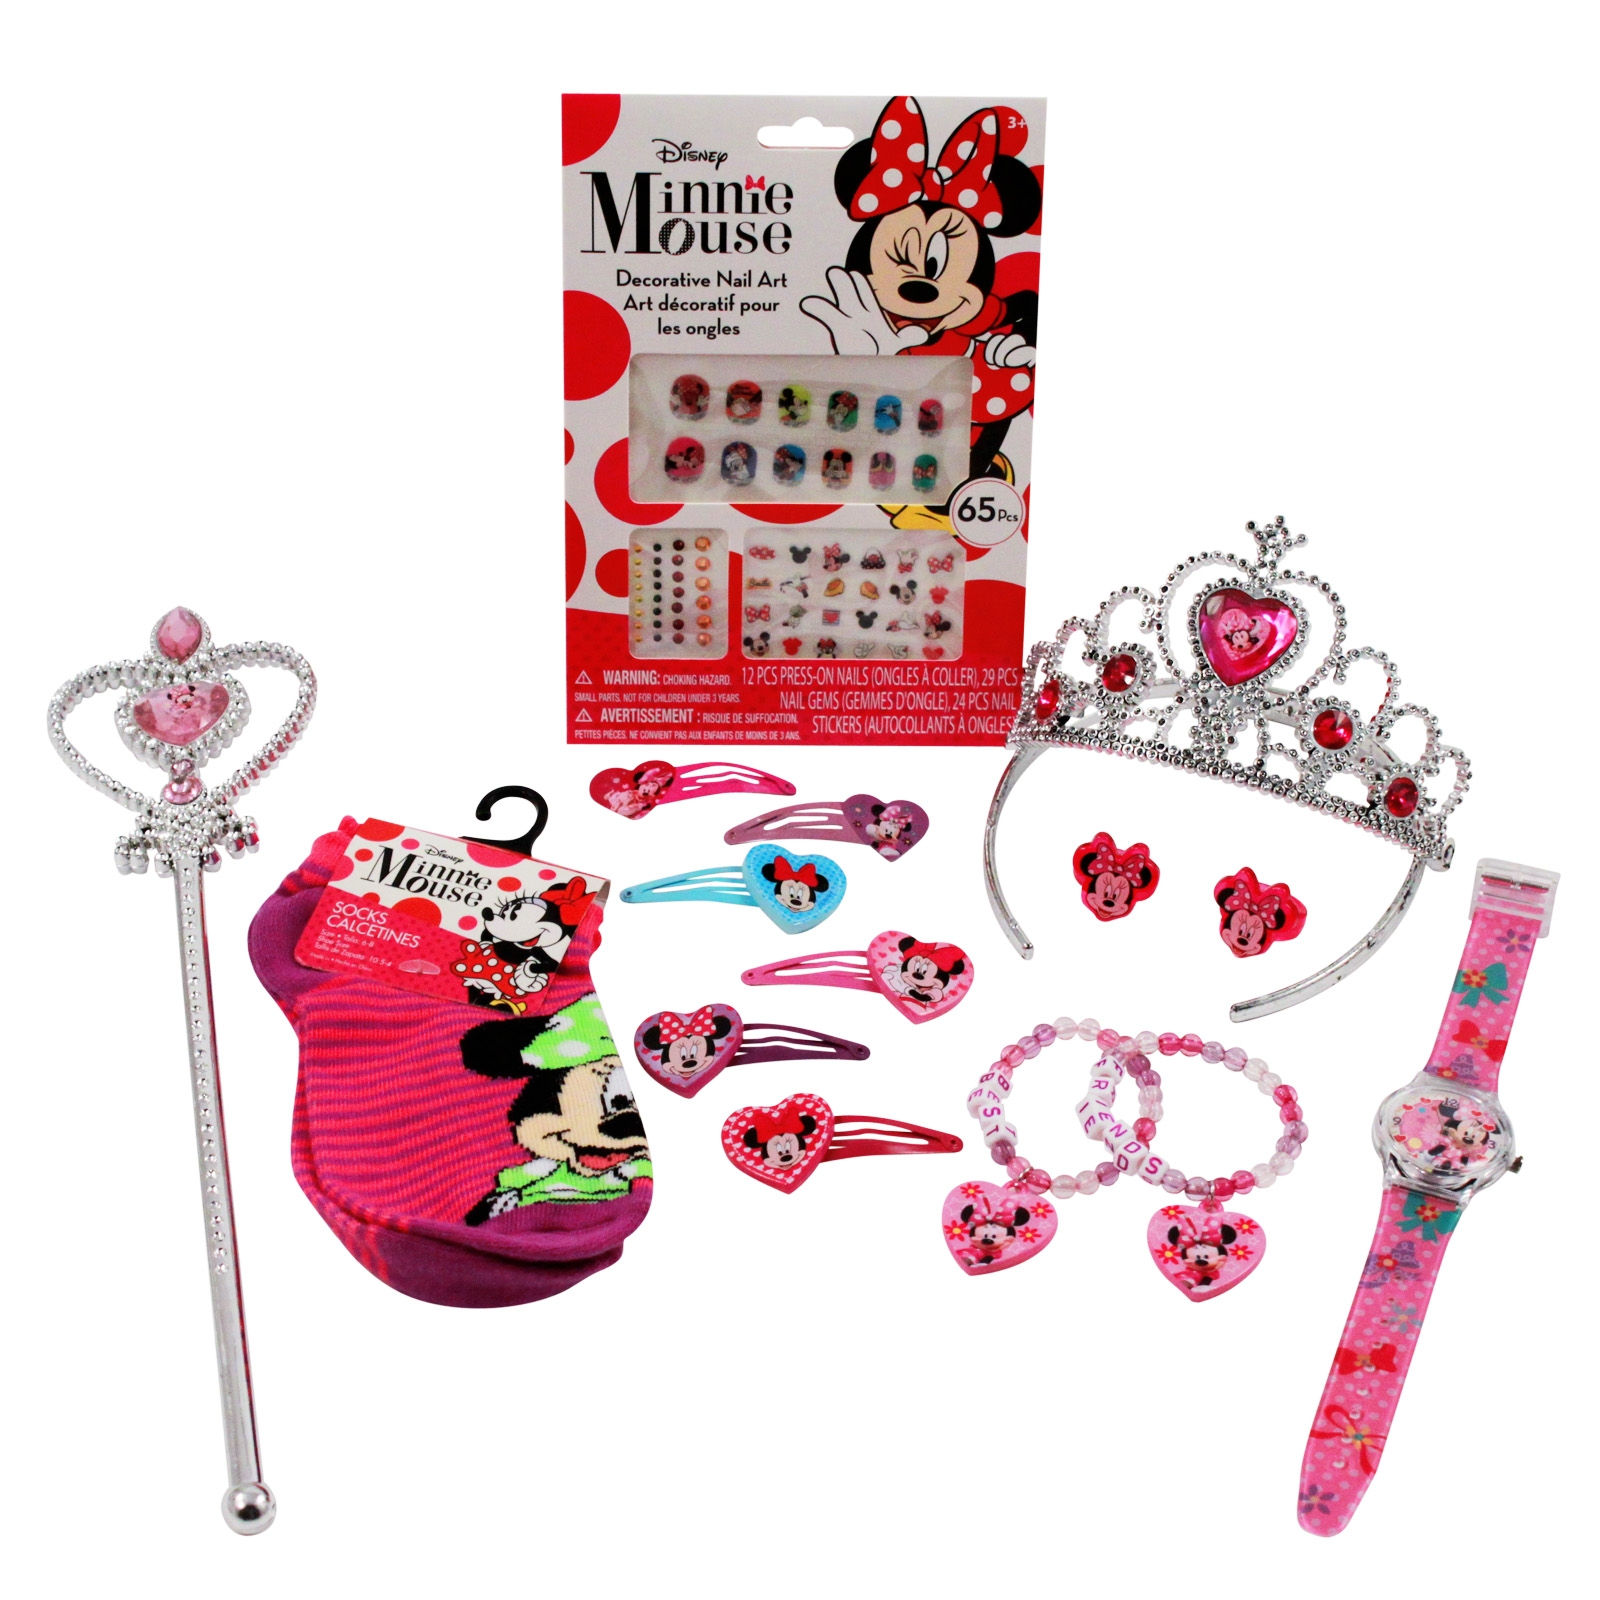 Disney Minnie Mouse Girls Halloween Costume Set Tiara Wand Hair Clips Jewelry Socks Press on Nails